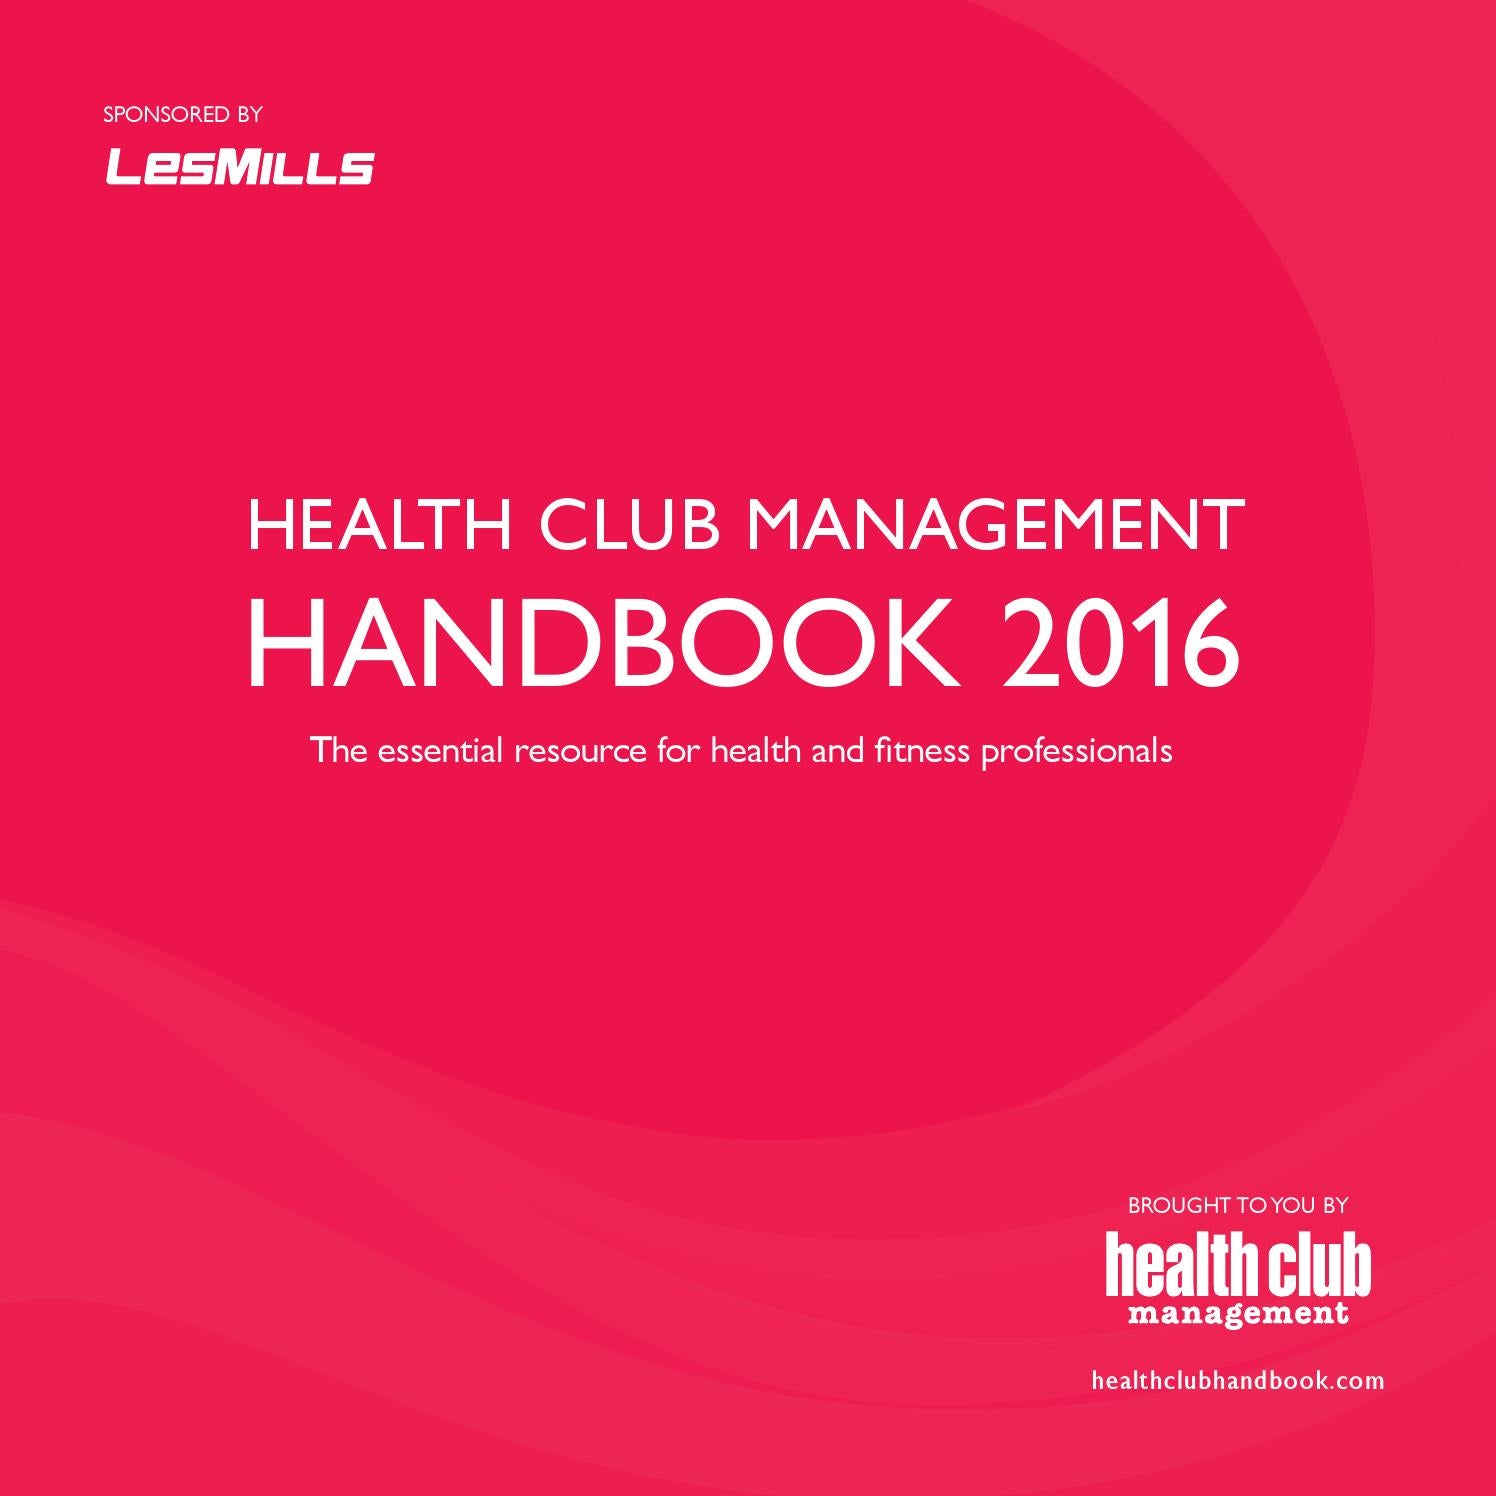 Health Club Management Handbook 2016 by Leisure Media - issuu